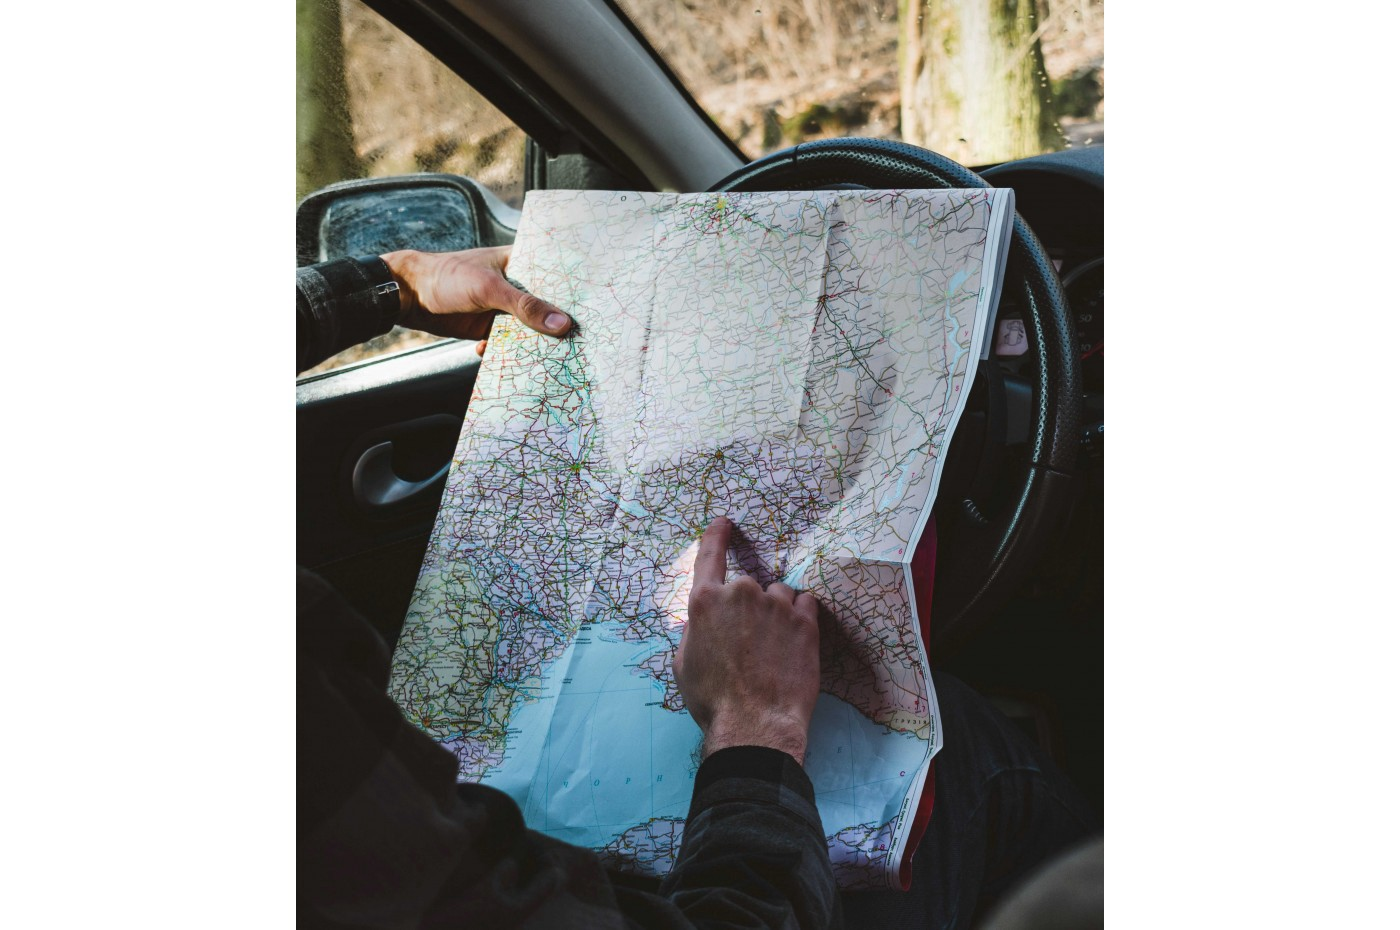 A man holding a map over his car's steering wheel and figuring out his location and course.